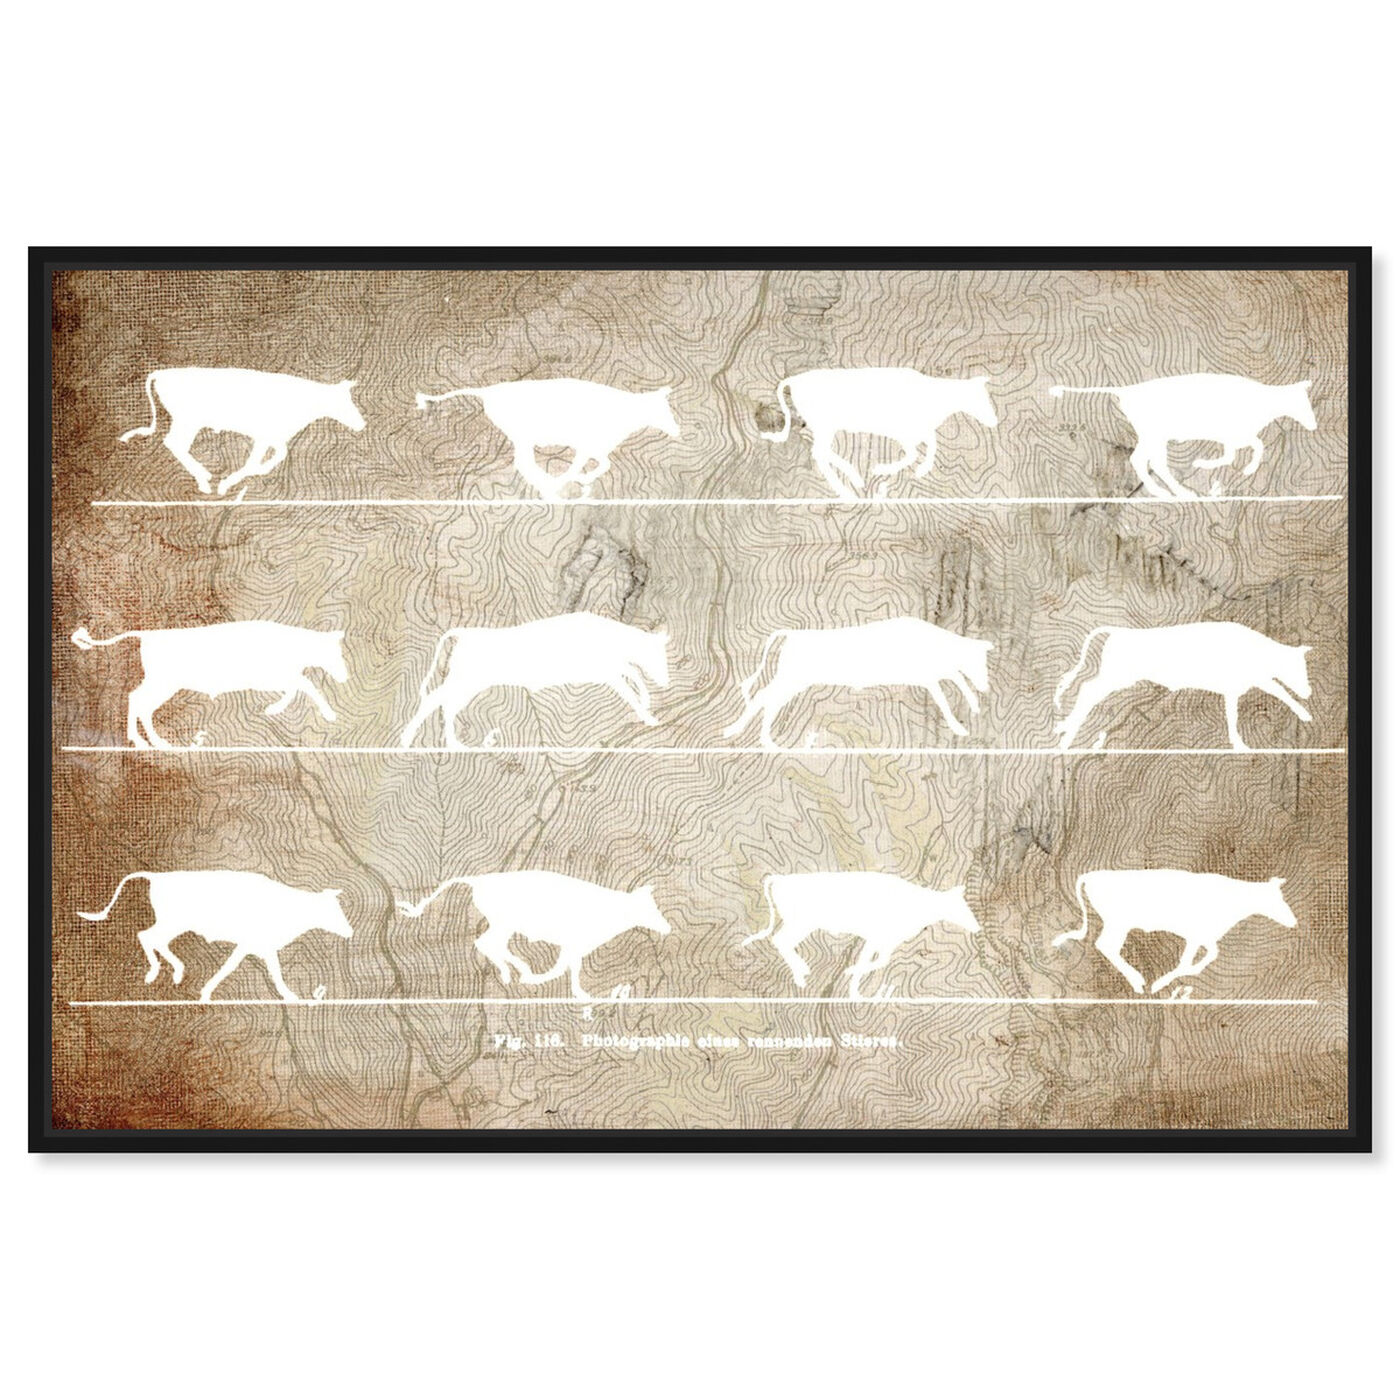 Front view of Cows in Motion featuring animals and farm animals art.